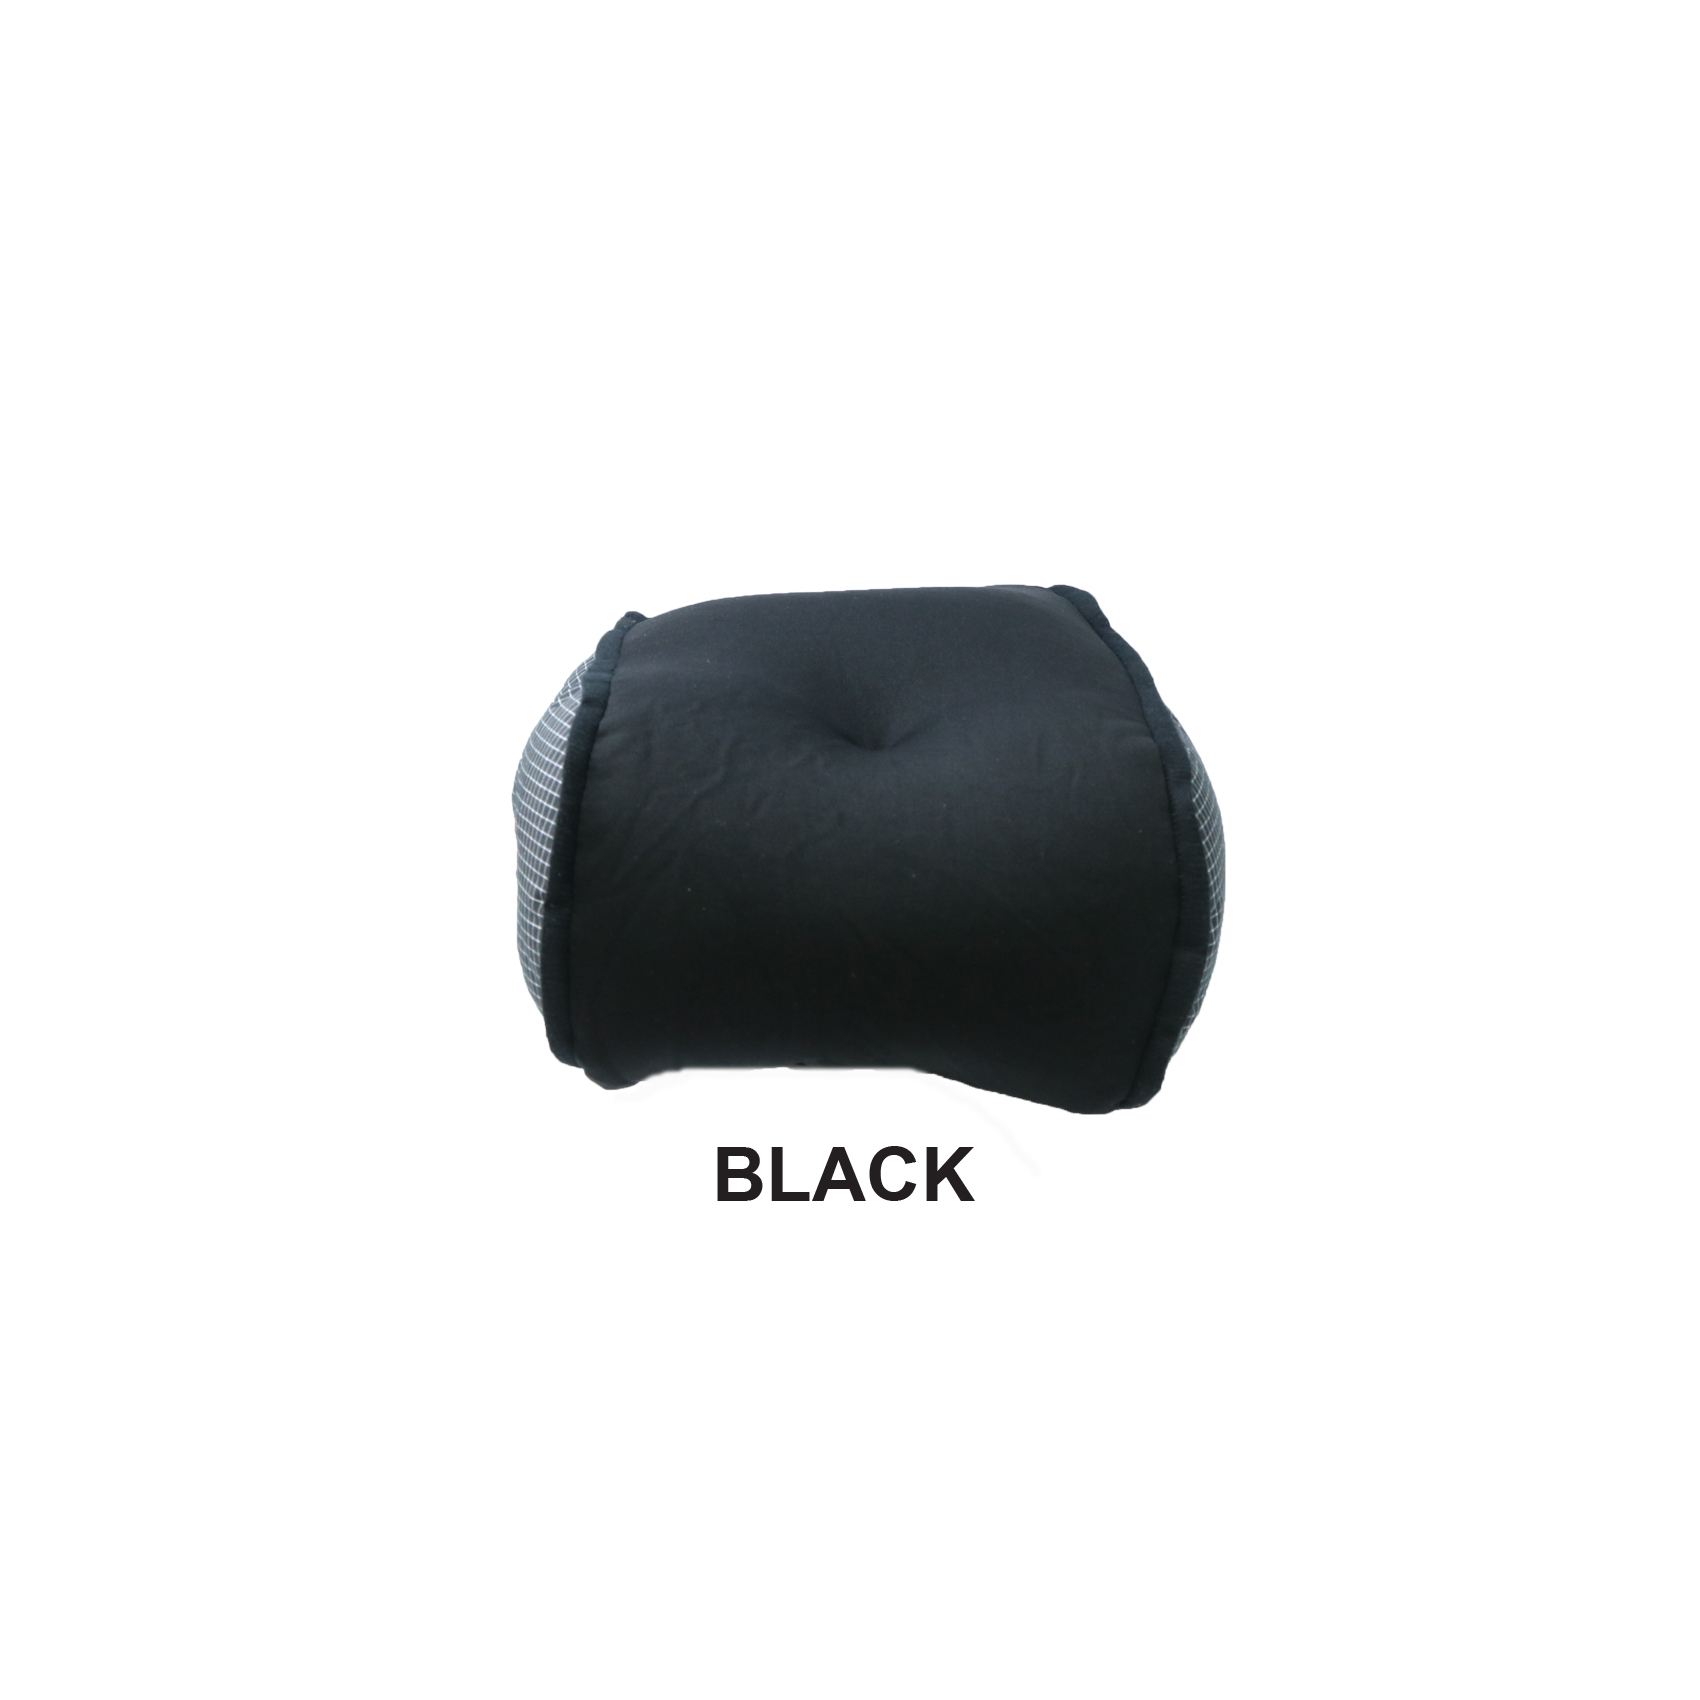 Vibrating Microbead Massage Pillow - Black